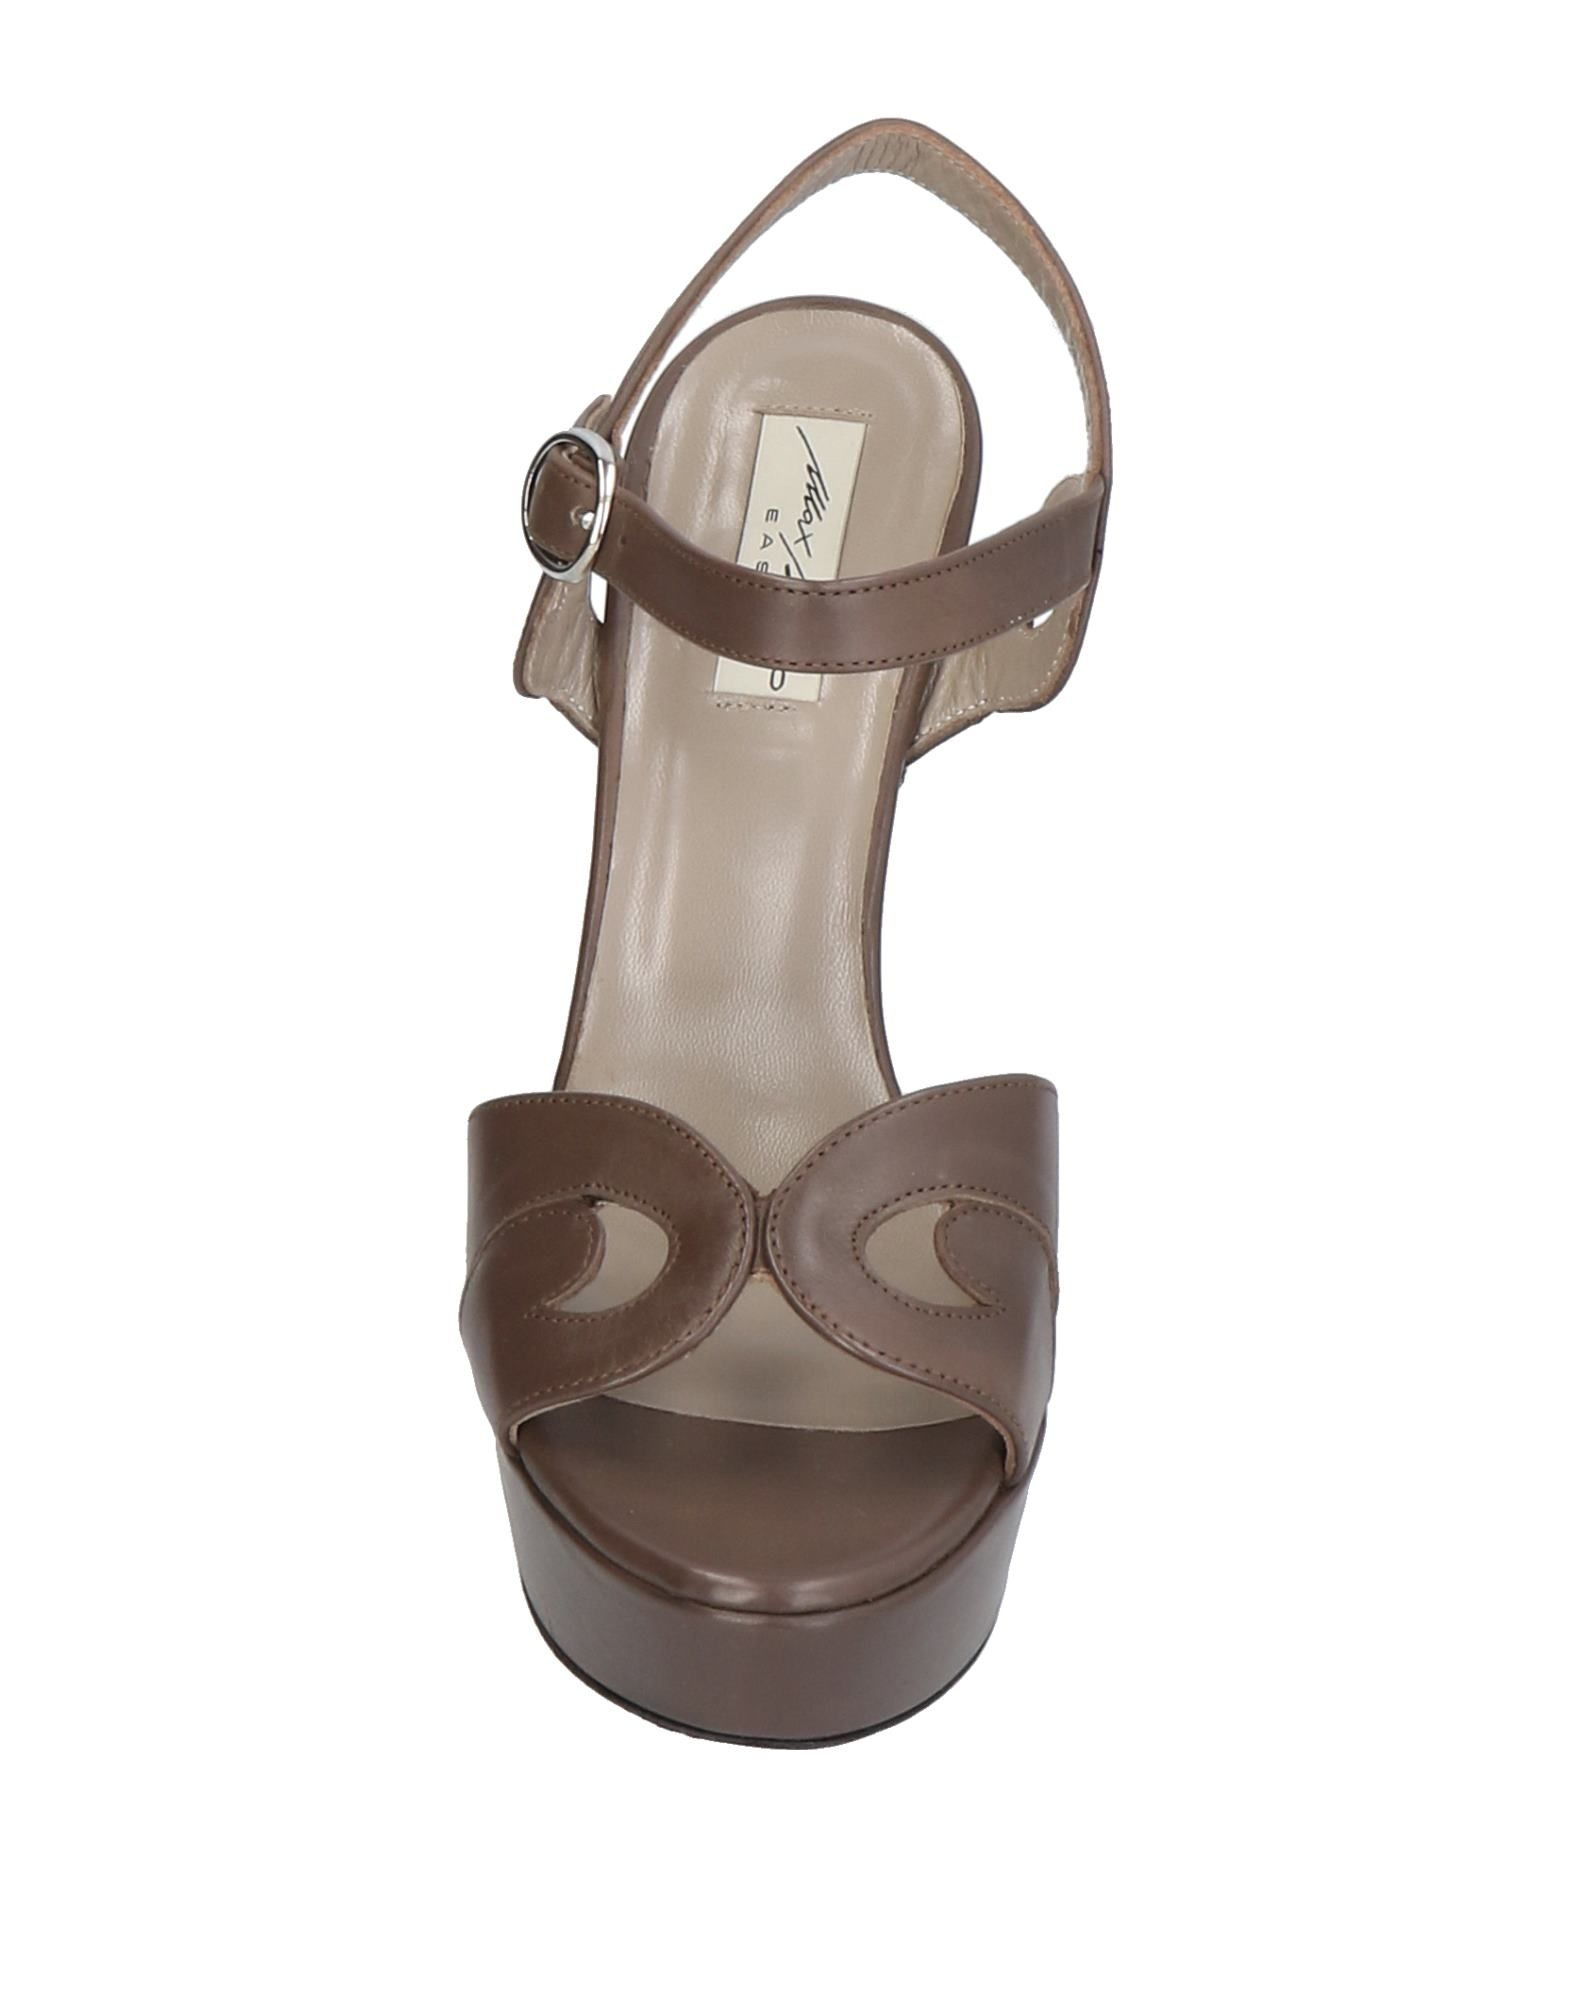 CHAUSSURES - SandalesMax Bianco CEByMJT